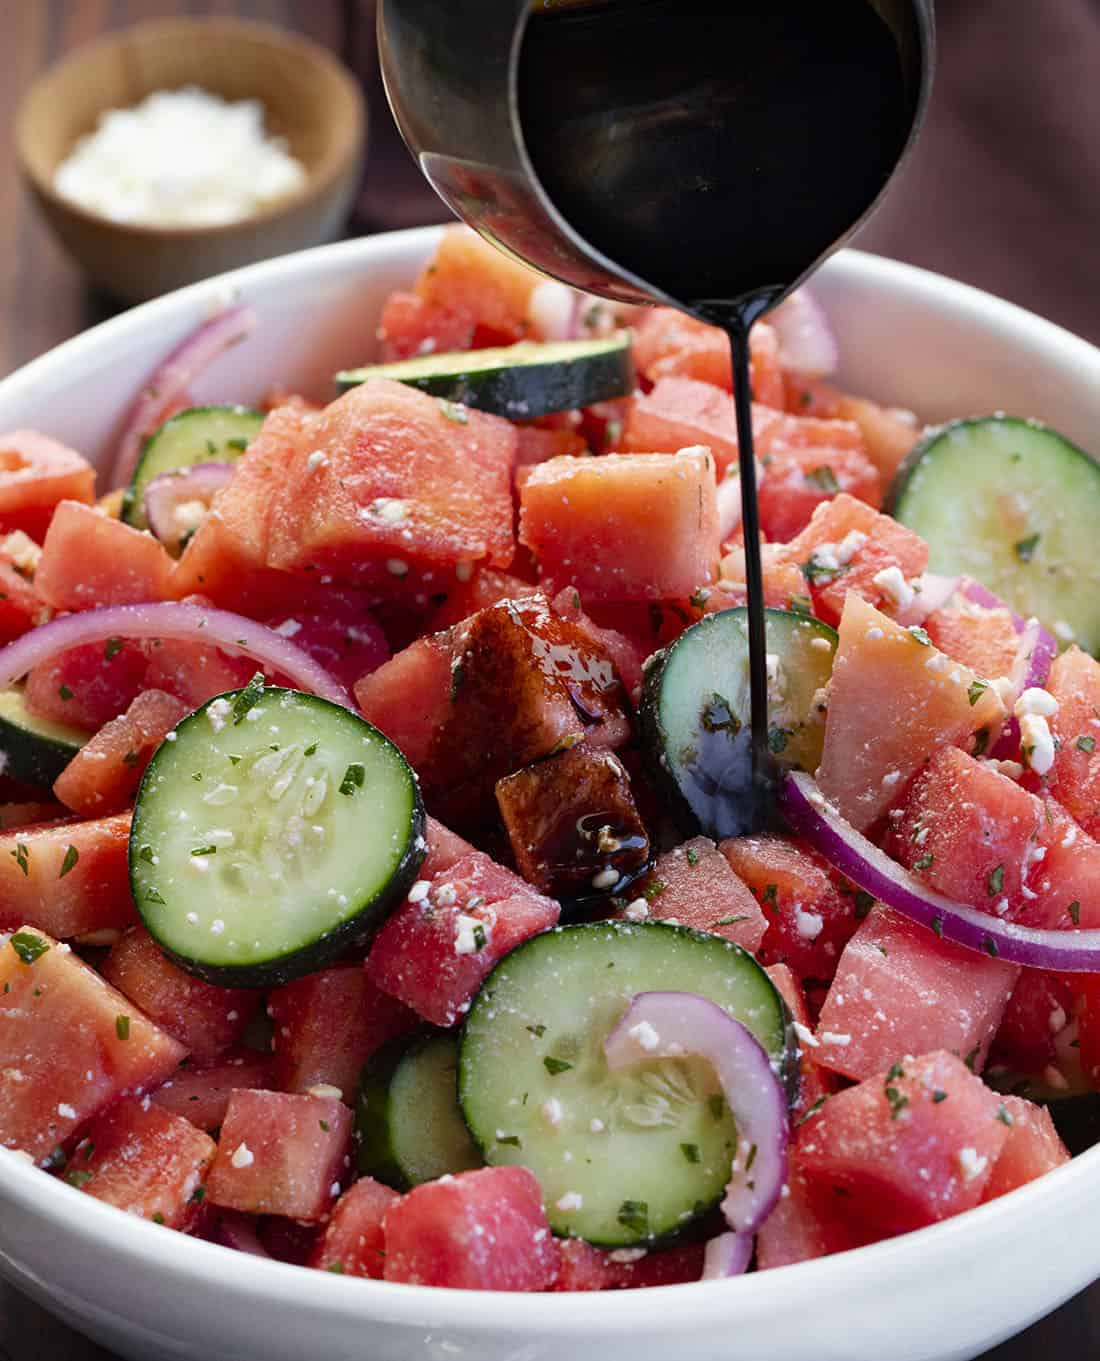 Pouring Balsamic OVer Watermelon Feta Salad